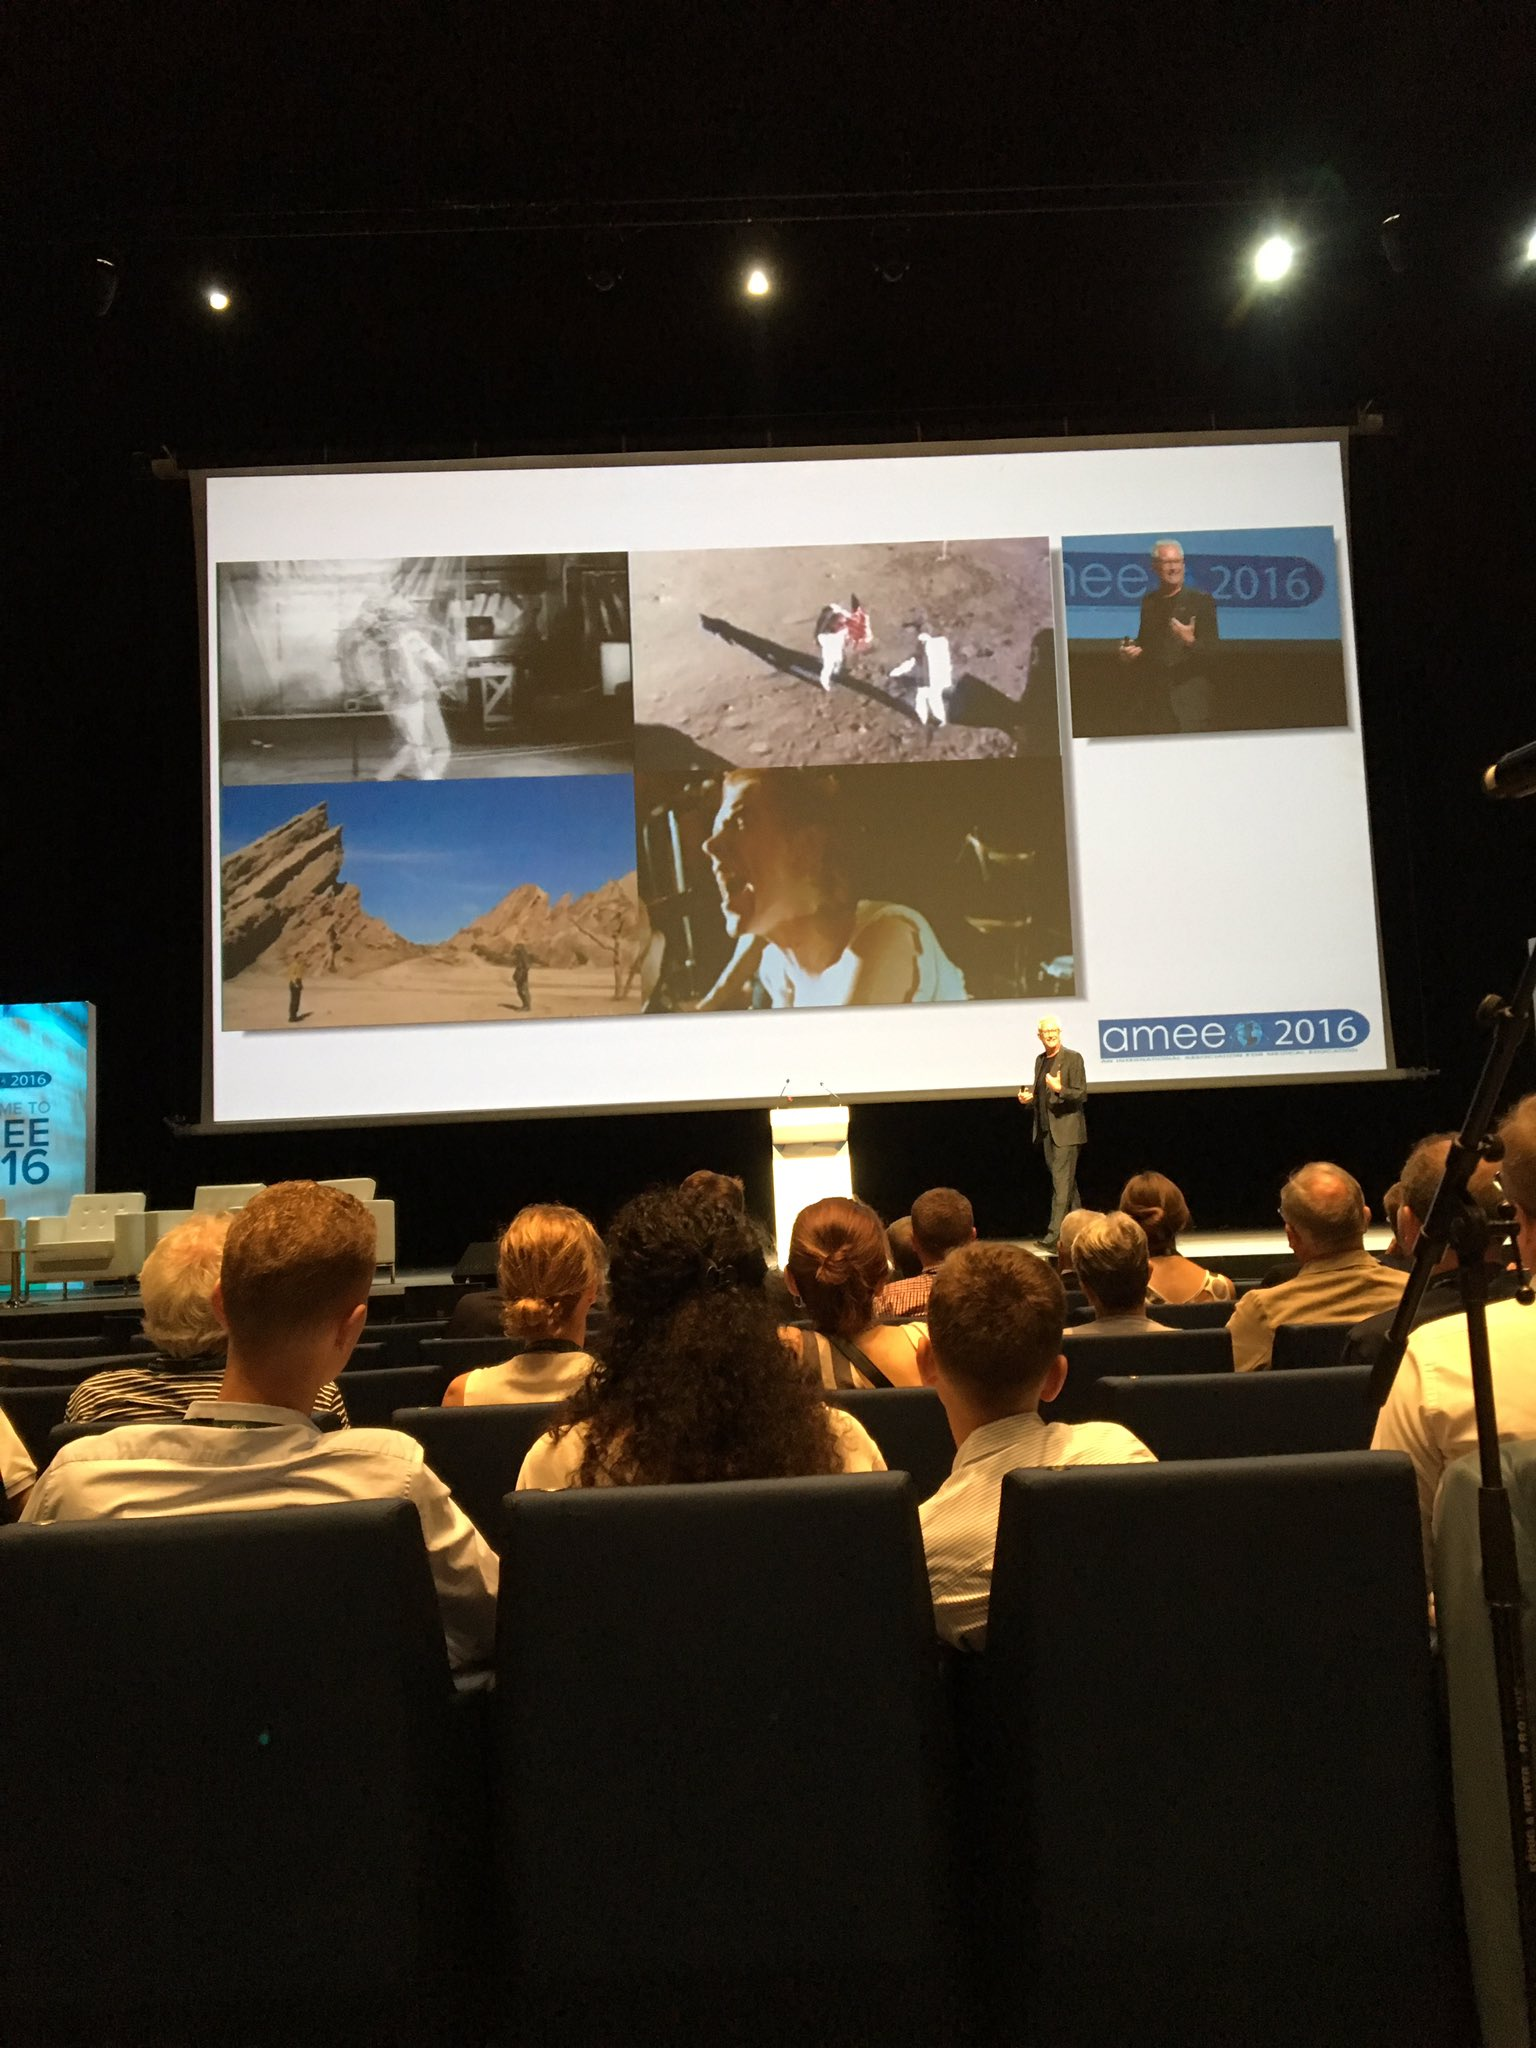 . @GrahamBM - Inspiration includes sci-fi, Apollo and punk. Good chops. #AMEE2016 https://t.co/3GBNQpCeH3